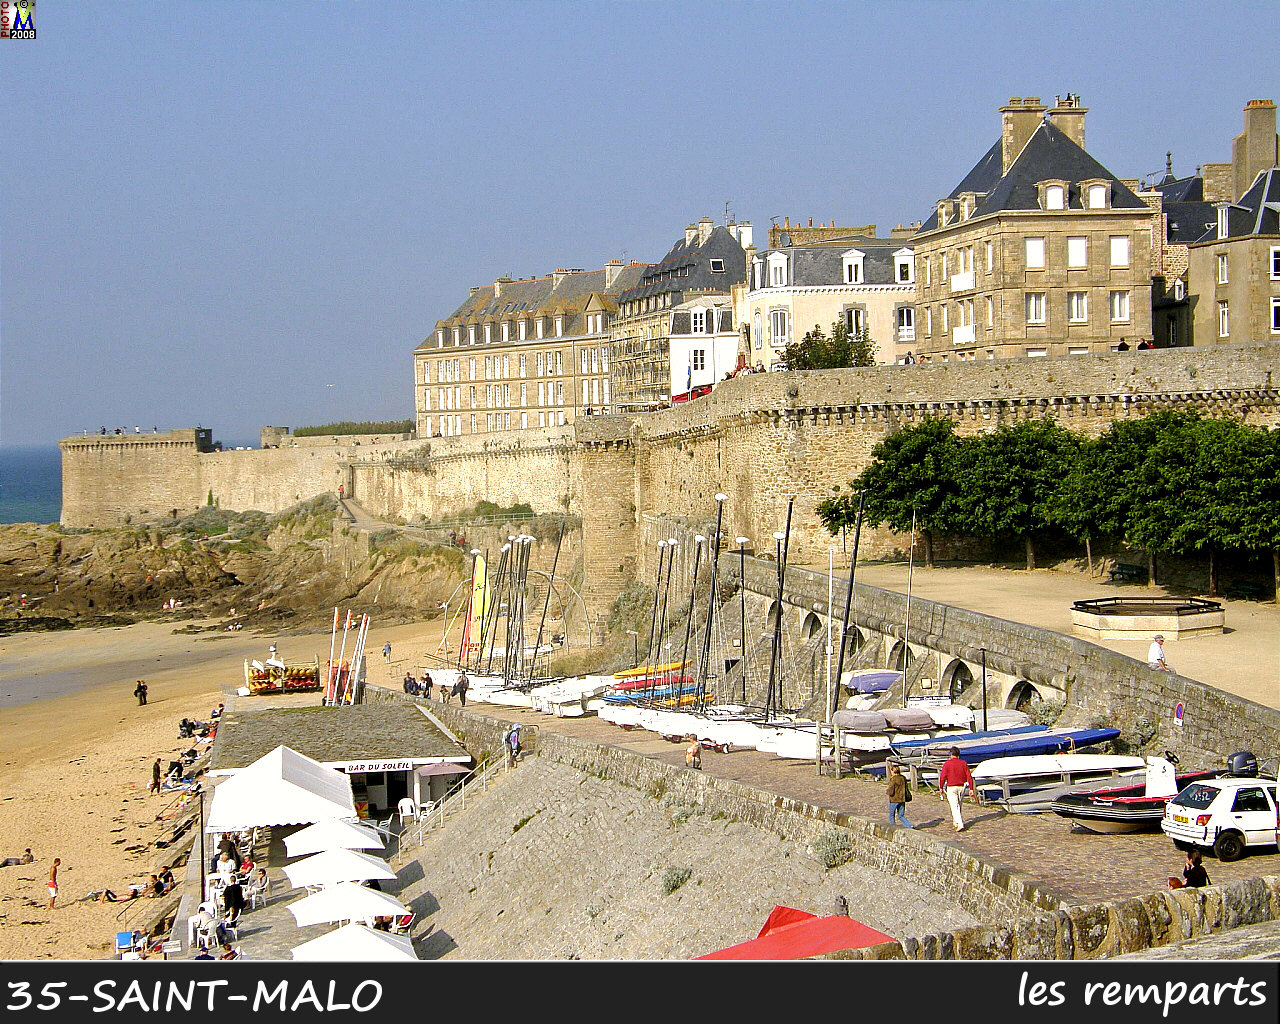 35StMALO_remparts_126.jpg